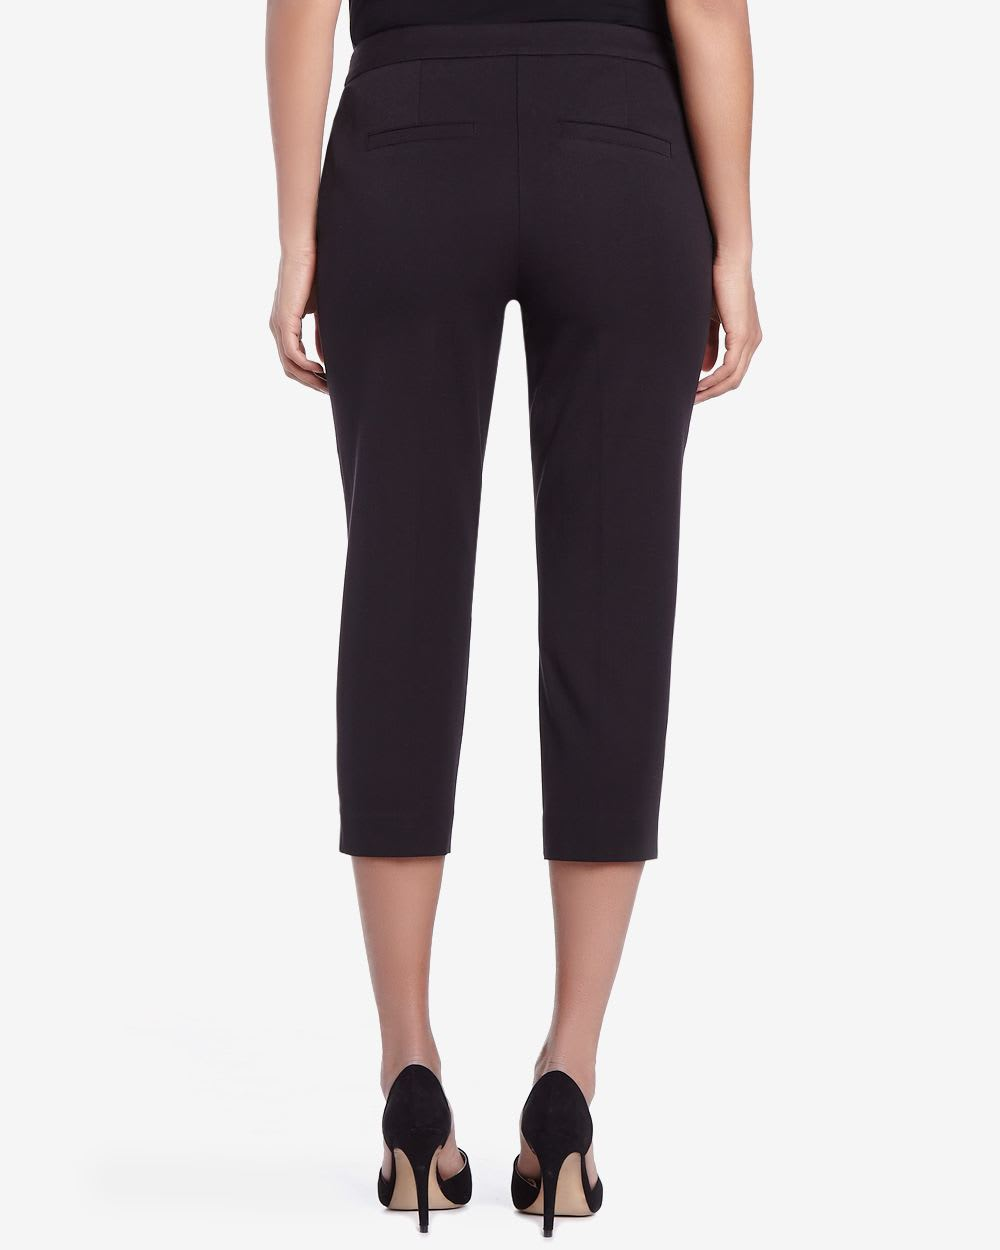 Find great deals on eBay for womens petite cropped pants. Shop with confidence.